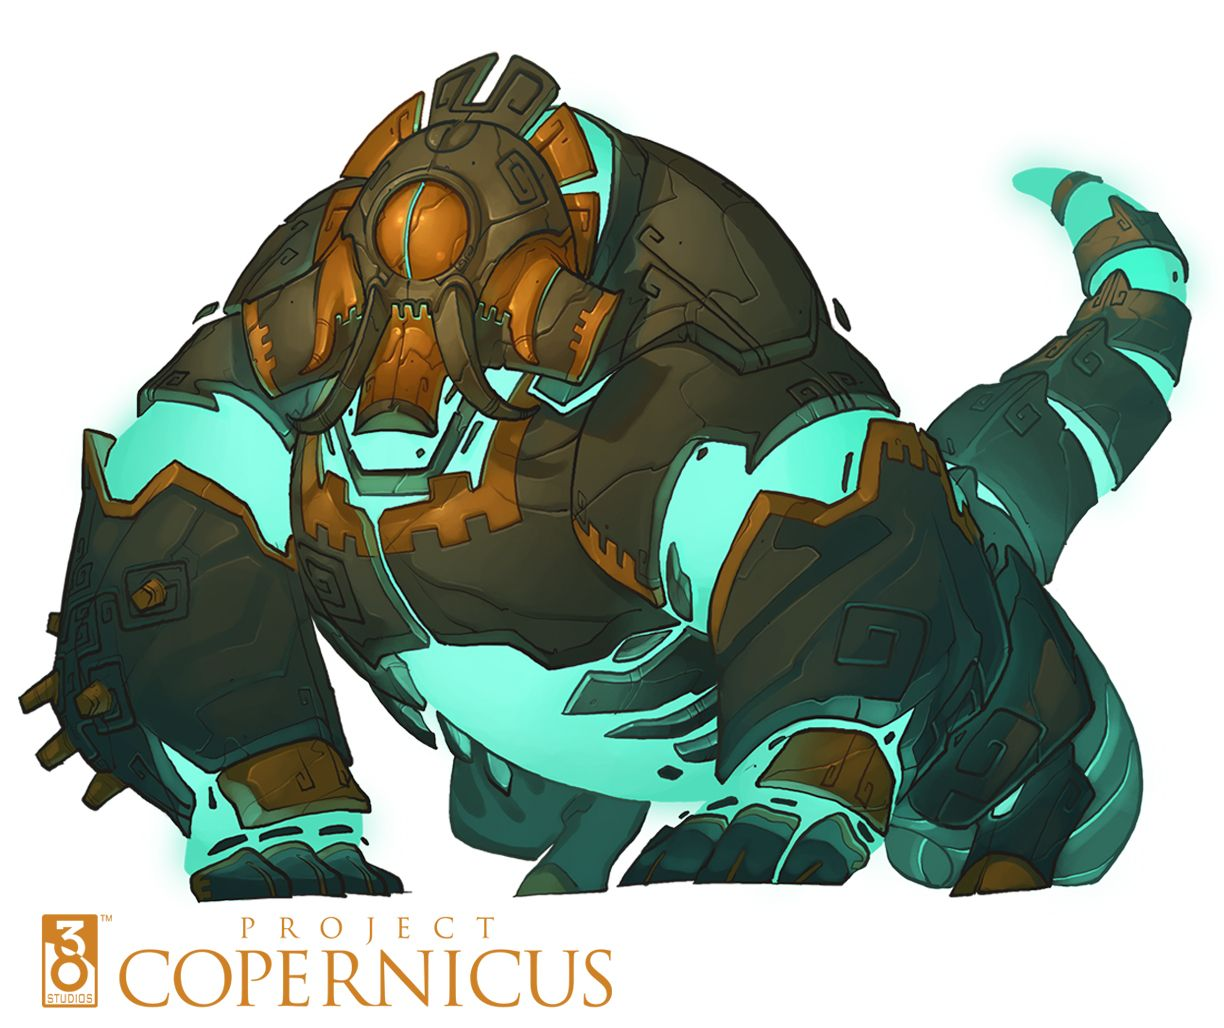 Copernicus Art - Bellowing Golem by *nicholaskole on deviantART - Sven's Comment: WOW! love thems bulky creature ghost mecha thingies :D